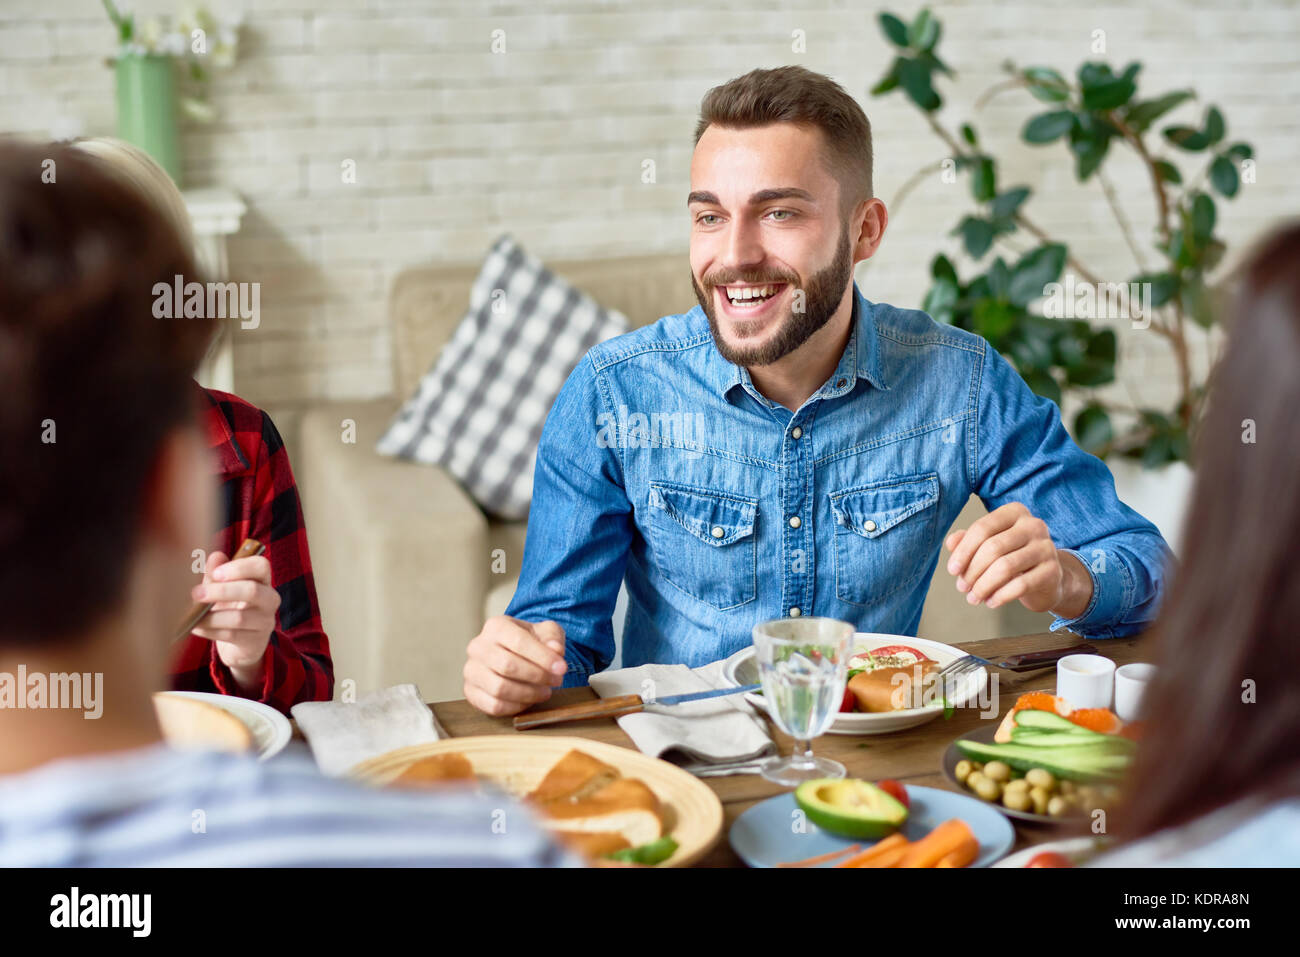 Young Man Enjoying Dinner with friends - Stock Image